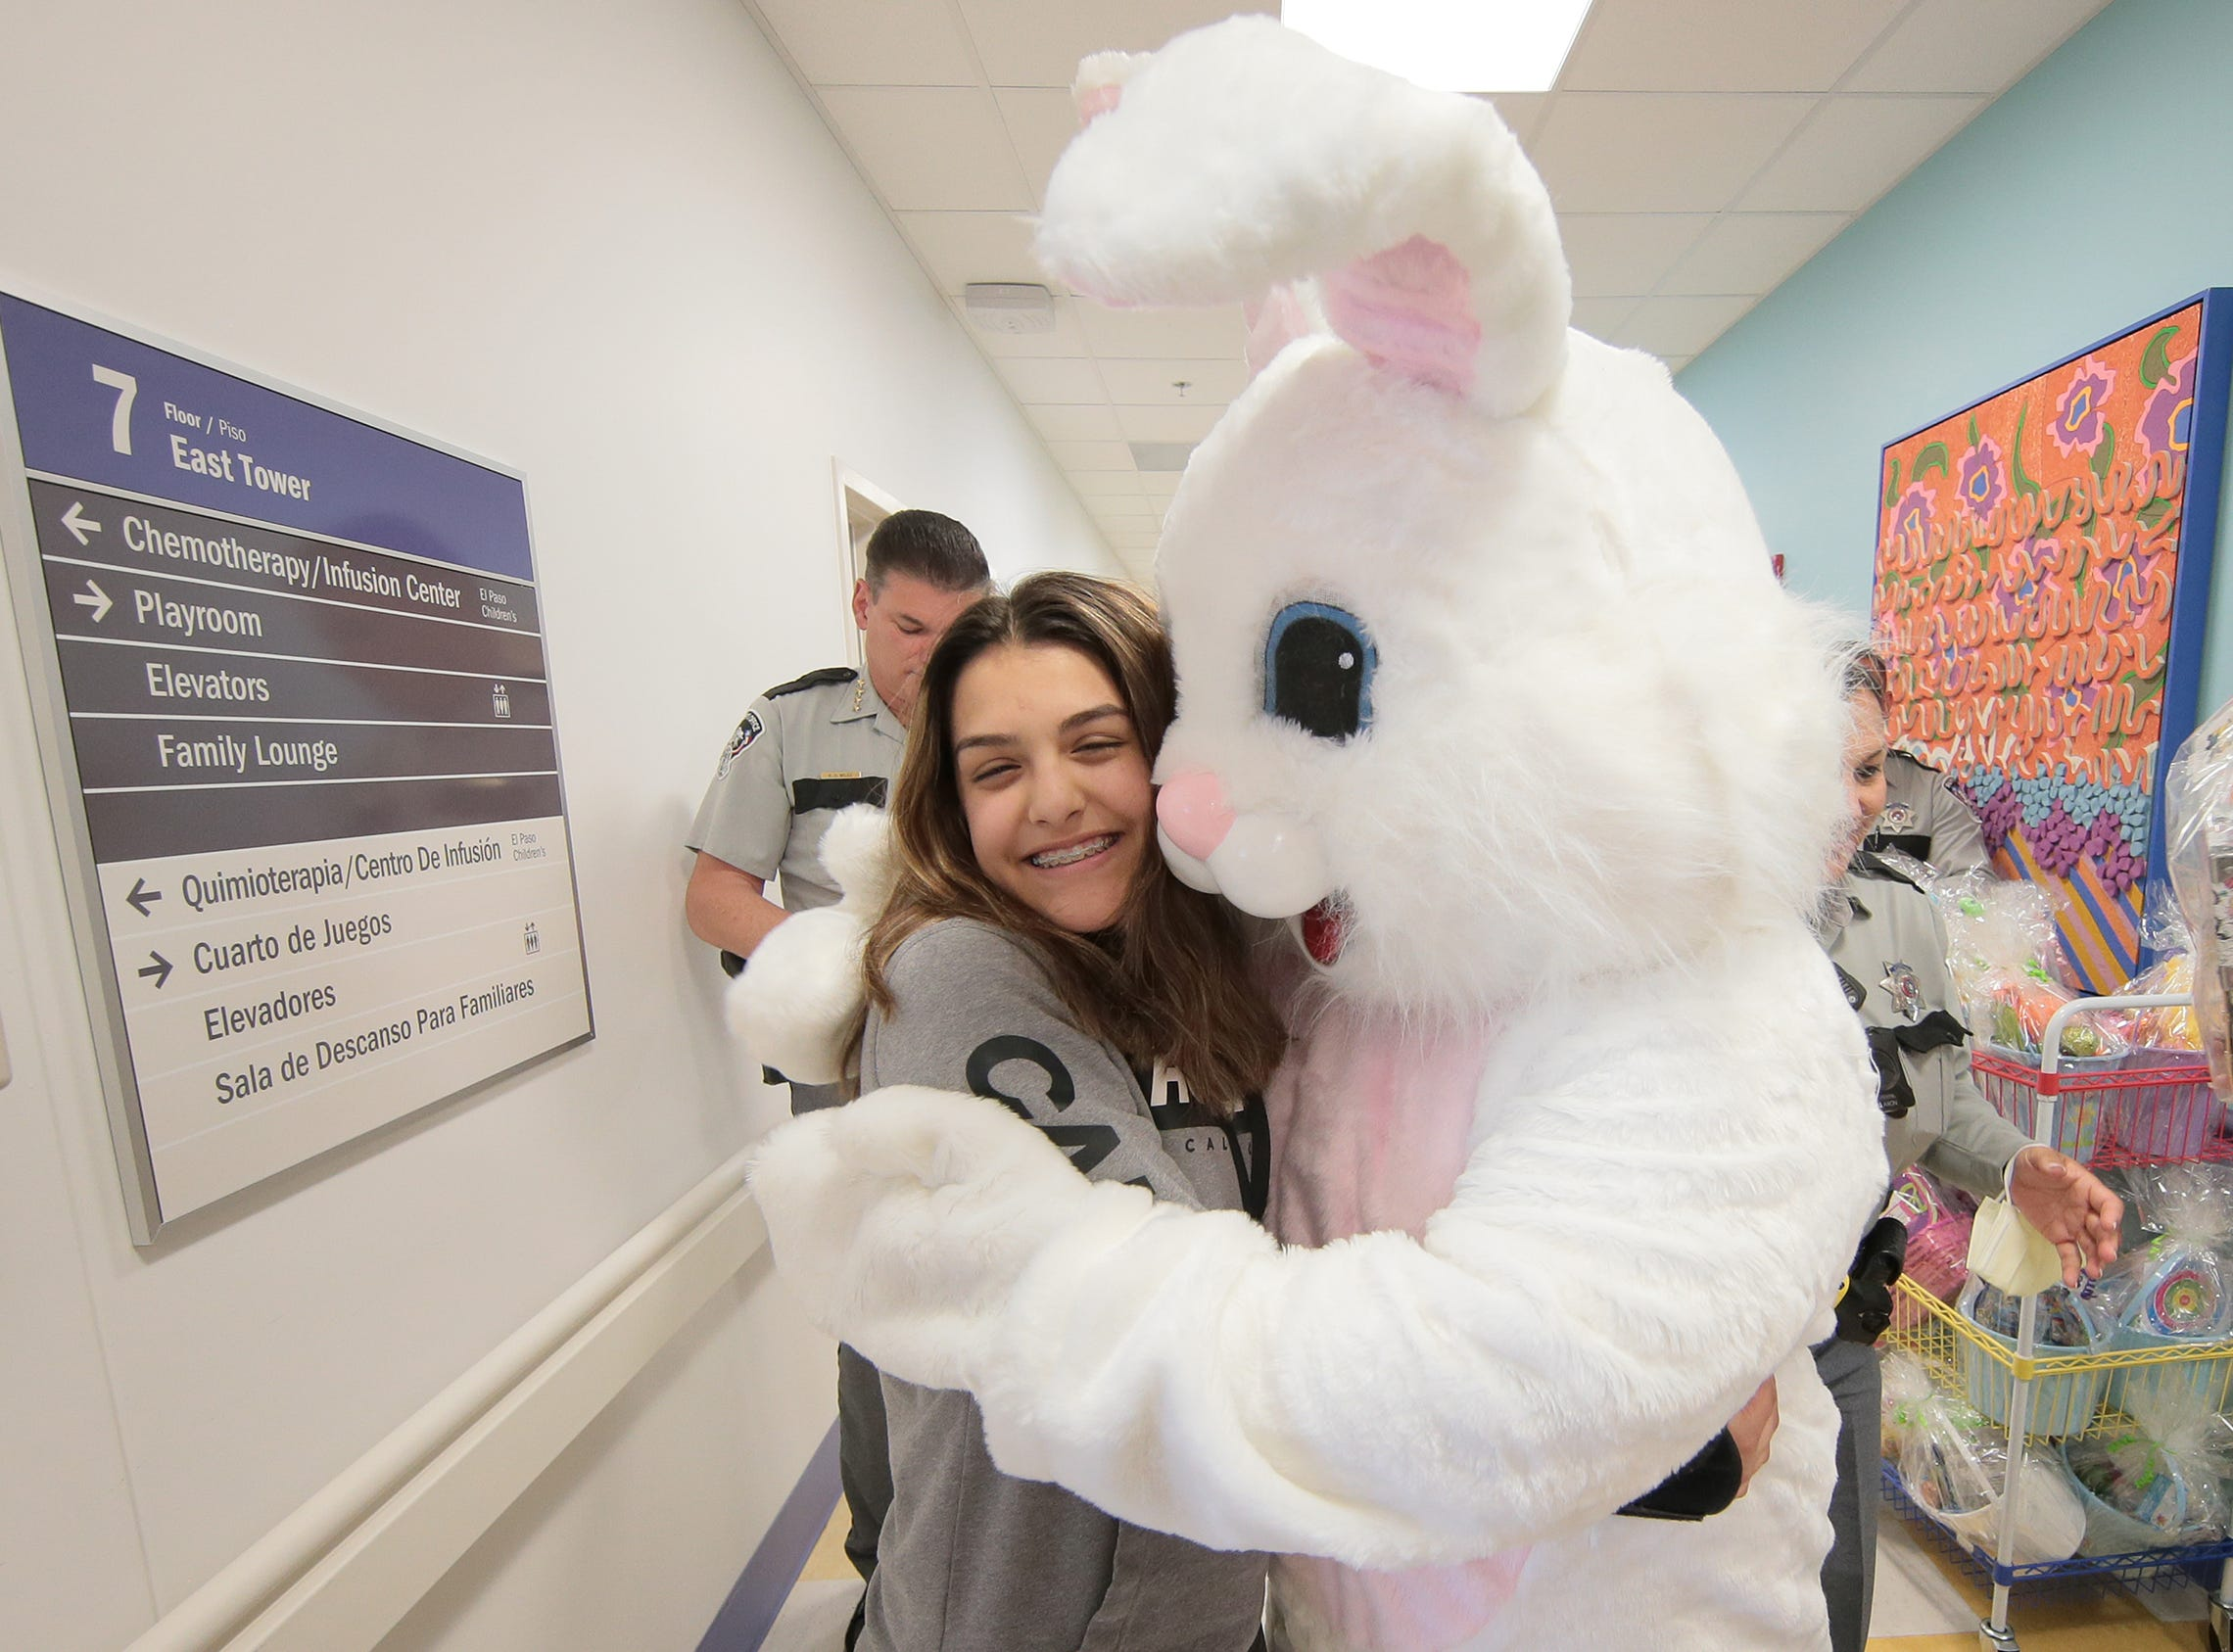 The El Paso Sheriff's Office, led by Sheriff Richard Wiles and the Easter Bunny, visited kids at El Paso Children's Hospital on Thursday, April 18, 2019.